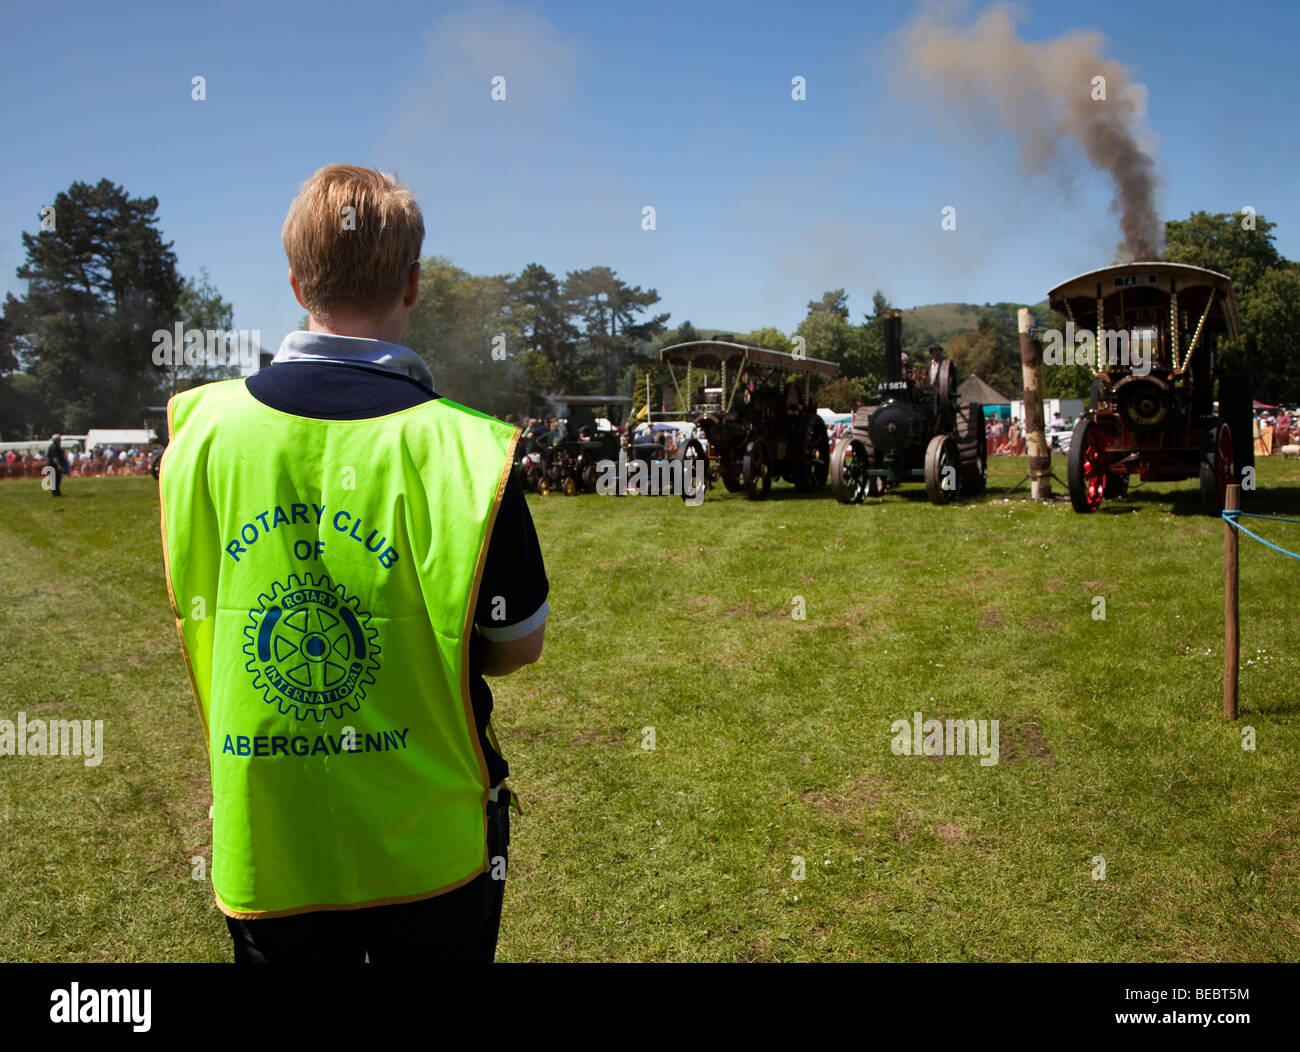 Rotary Club official wearing jacket at Abergavenny Steam Fair Wales UK - Stock Image